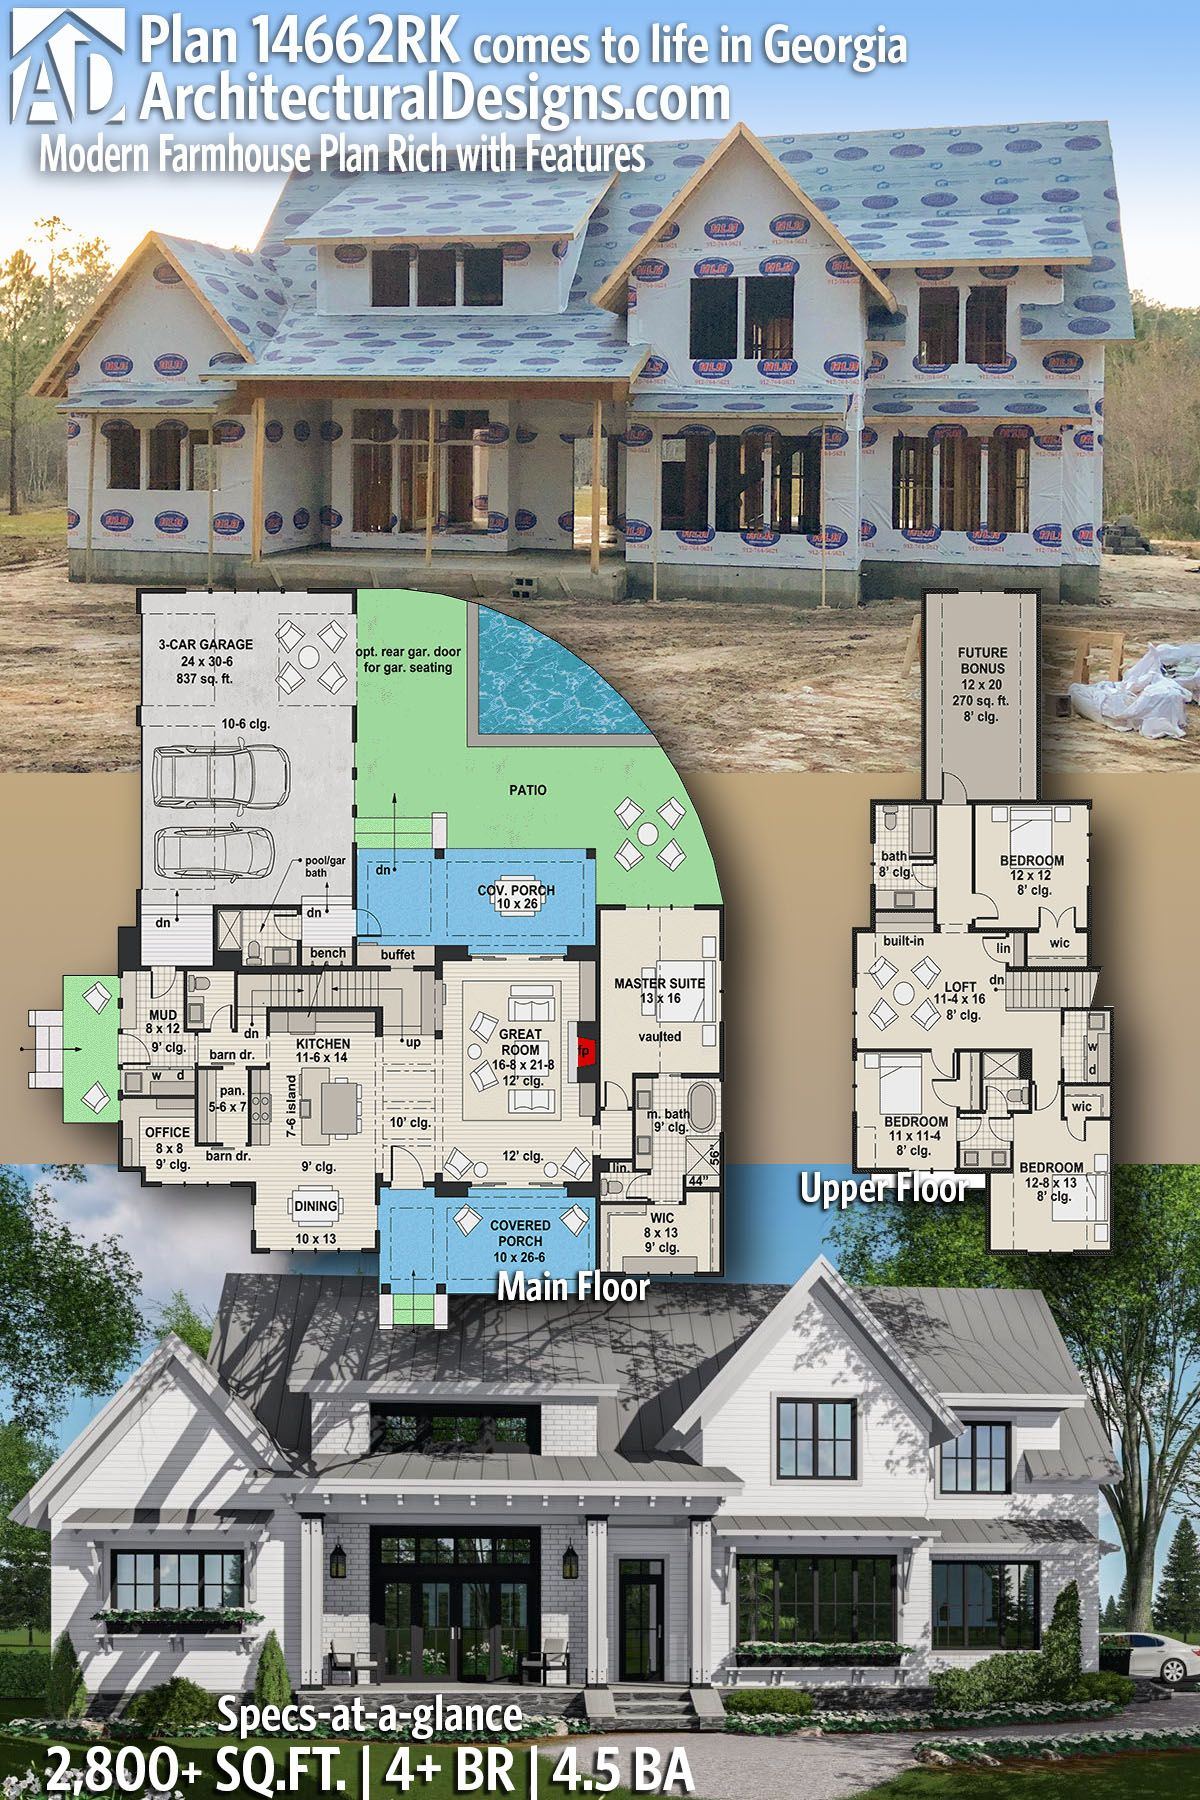 Architectural designs modern farmhouse plan rk under construction in georgia bedrooms baths square feet ready when you are also house plans archdesigns on pinterest rh